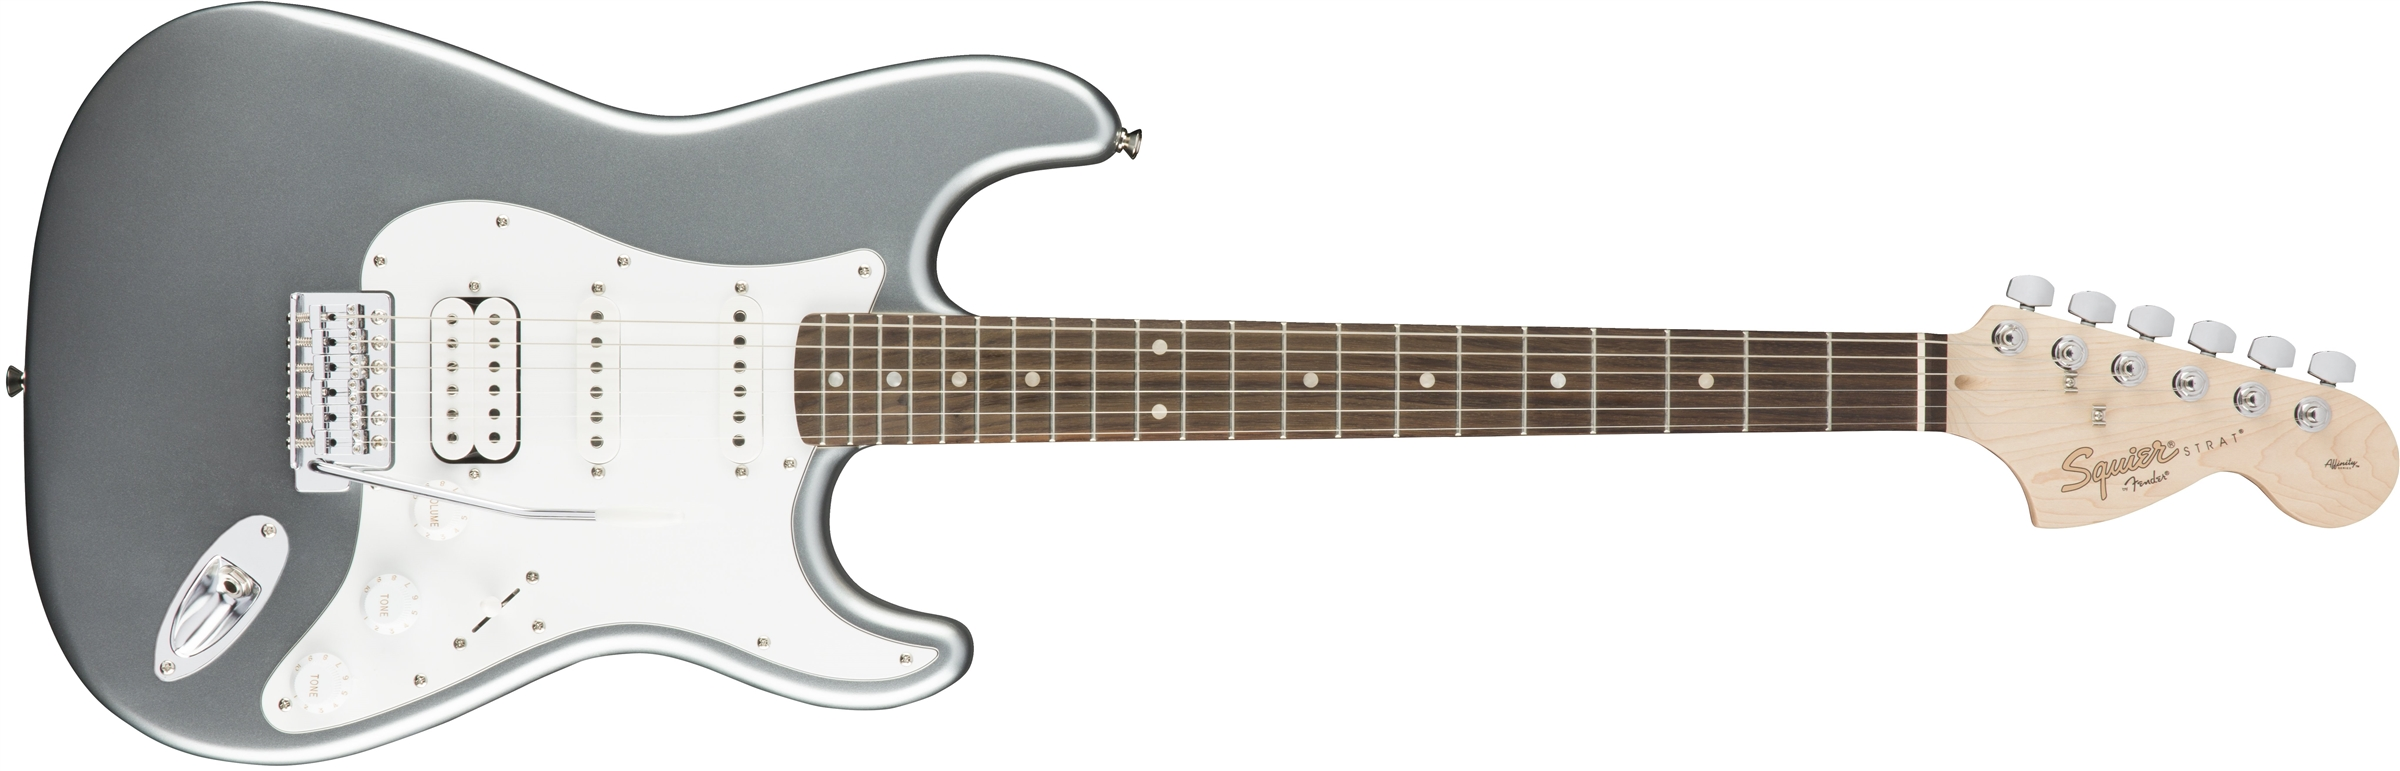 Squier Affinity Series™ Stratocaster® HSS, Slick Silver